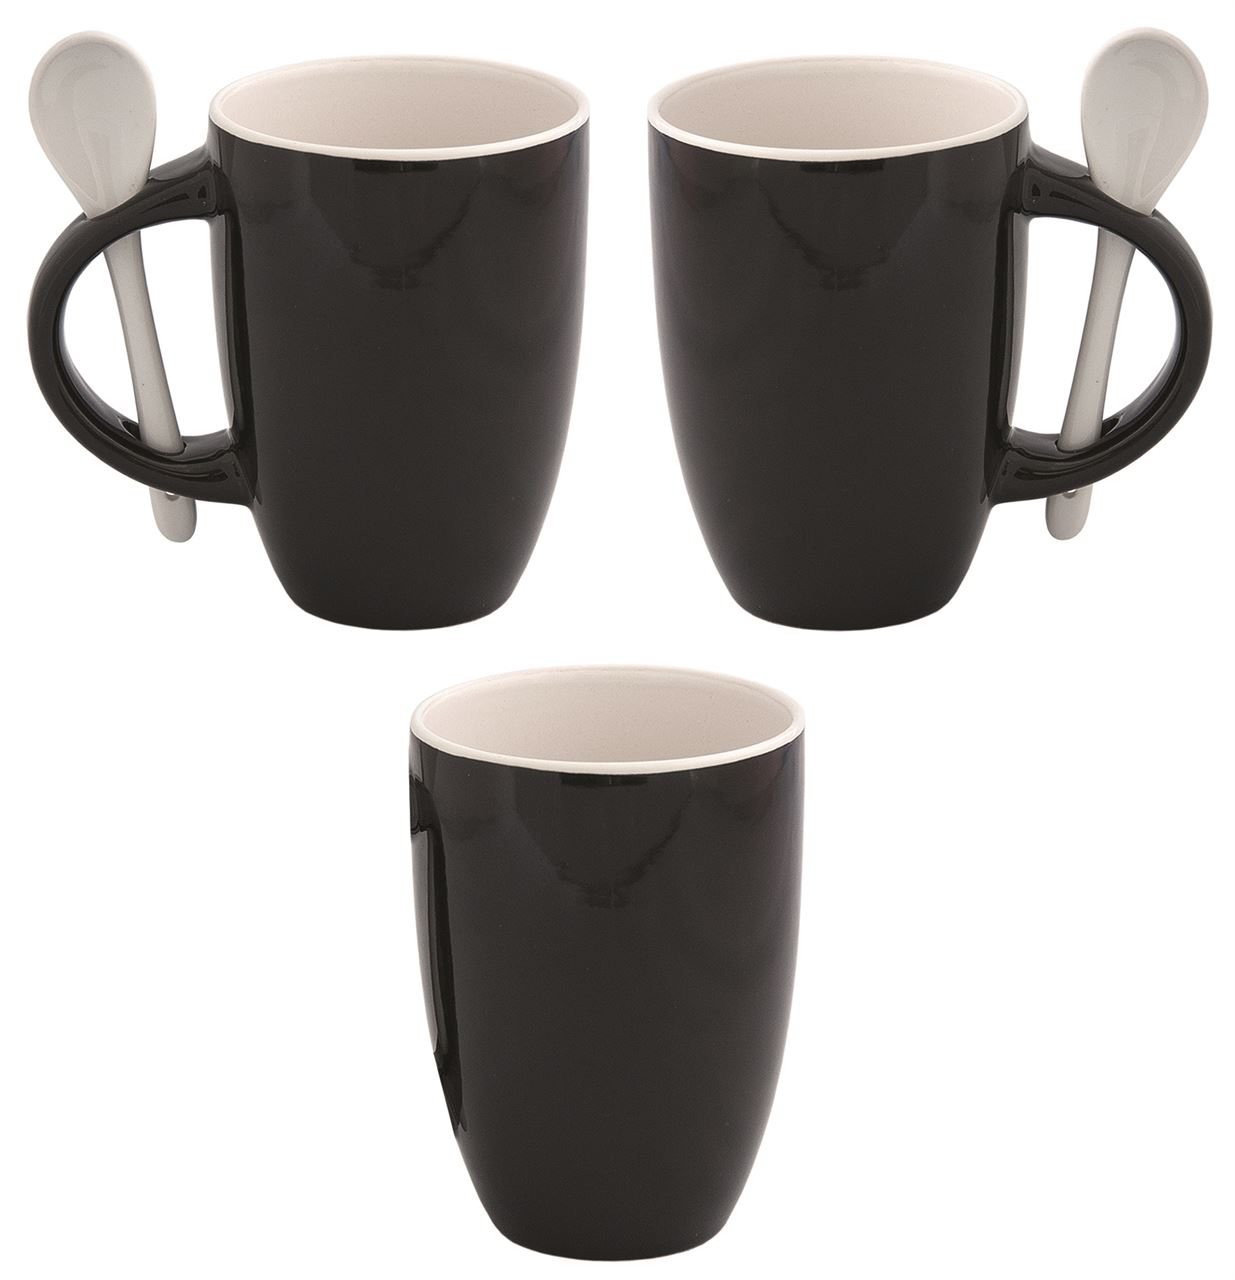 Picture of DEBCO Fuzion Two-Tone With Spoon Mug